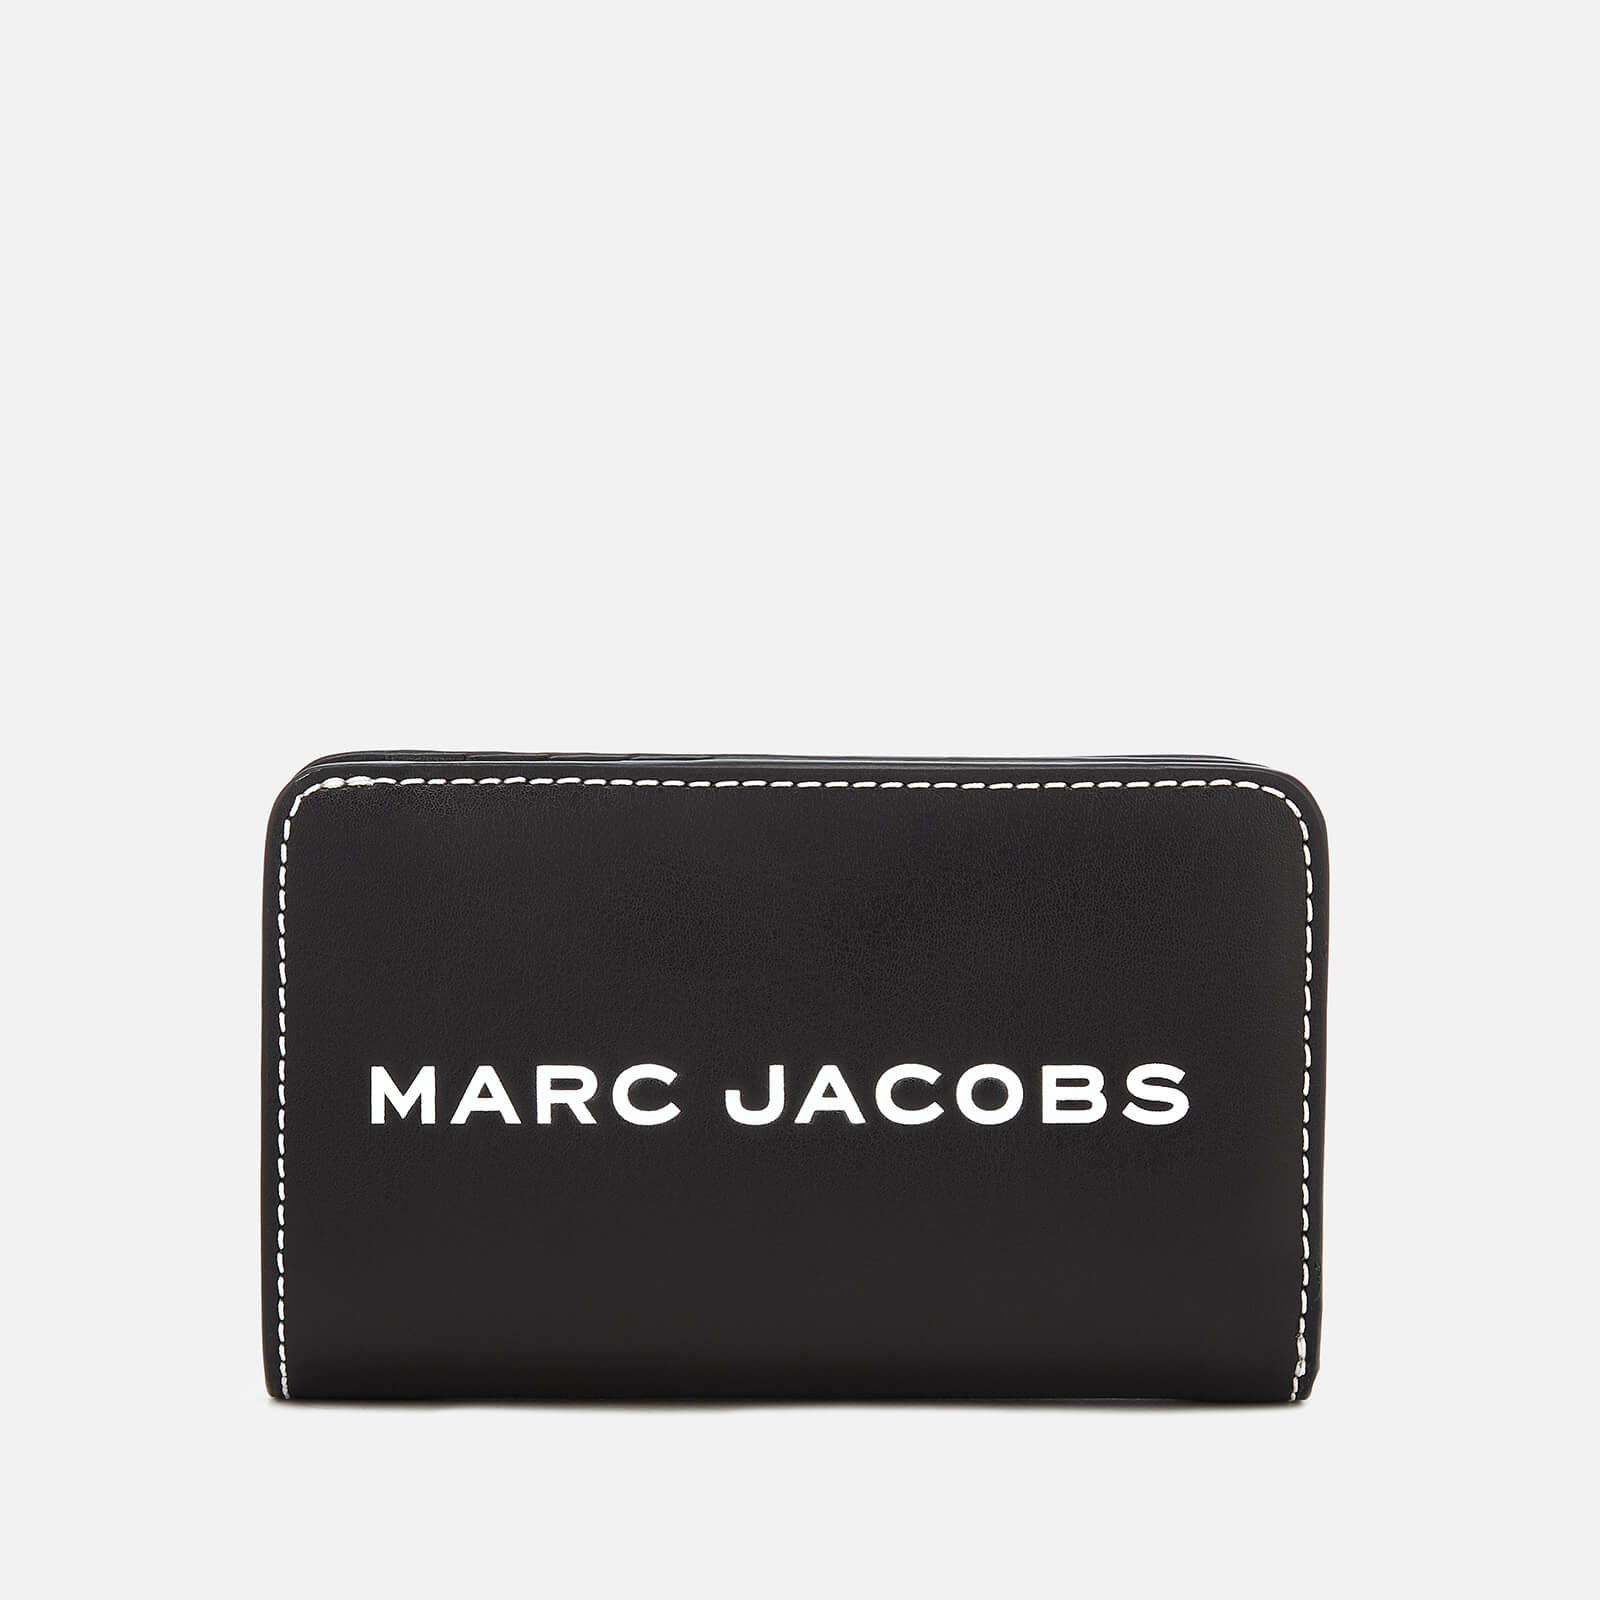 9a237ef534 Marc Jacobs Women's Compact Wallet - Black - Free UK Delivery over £50